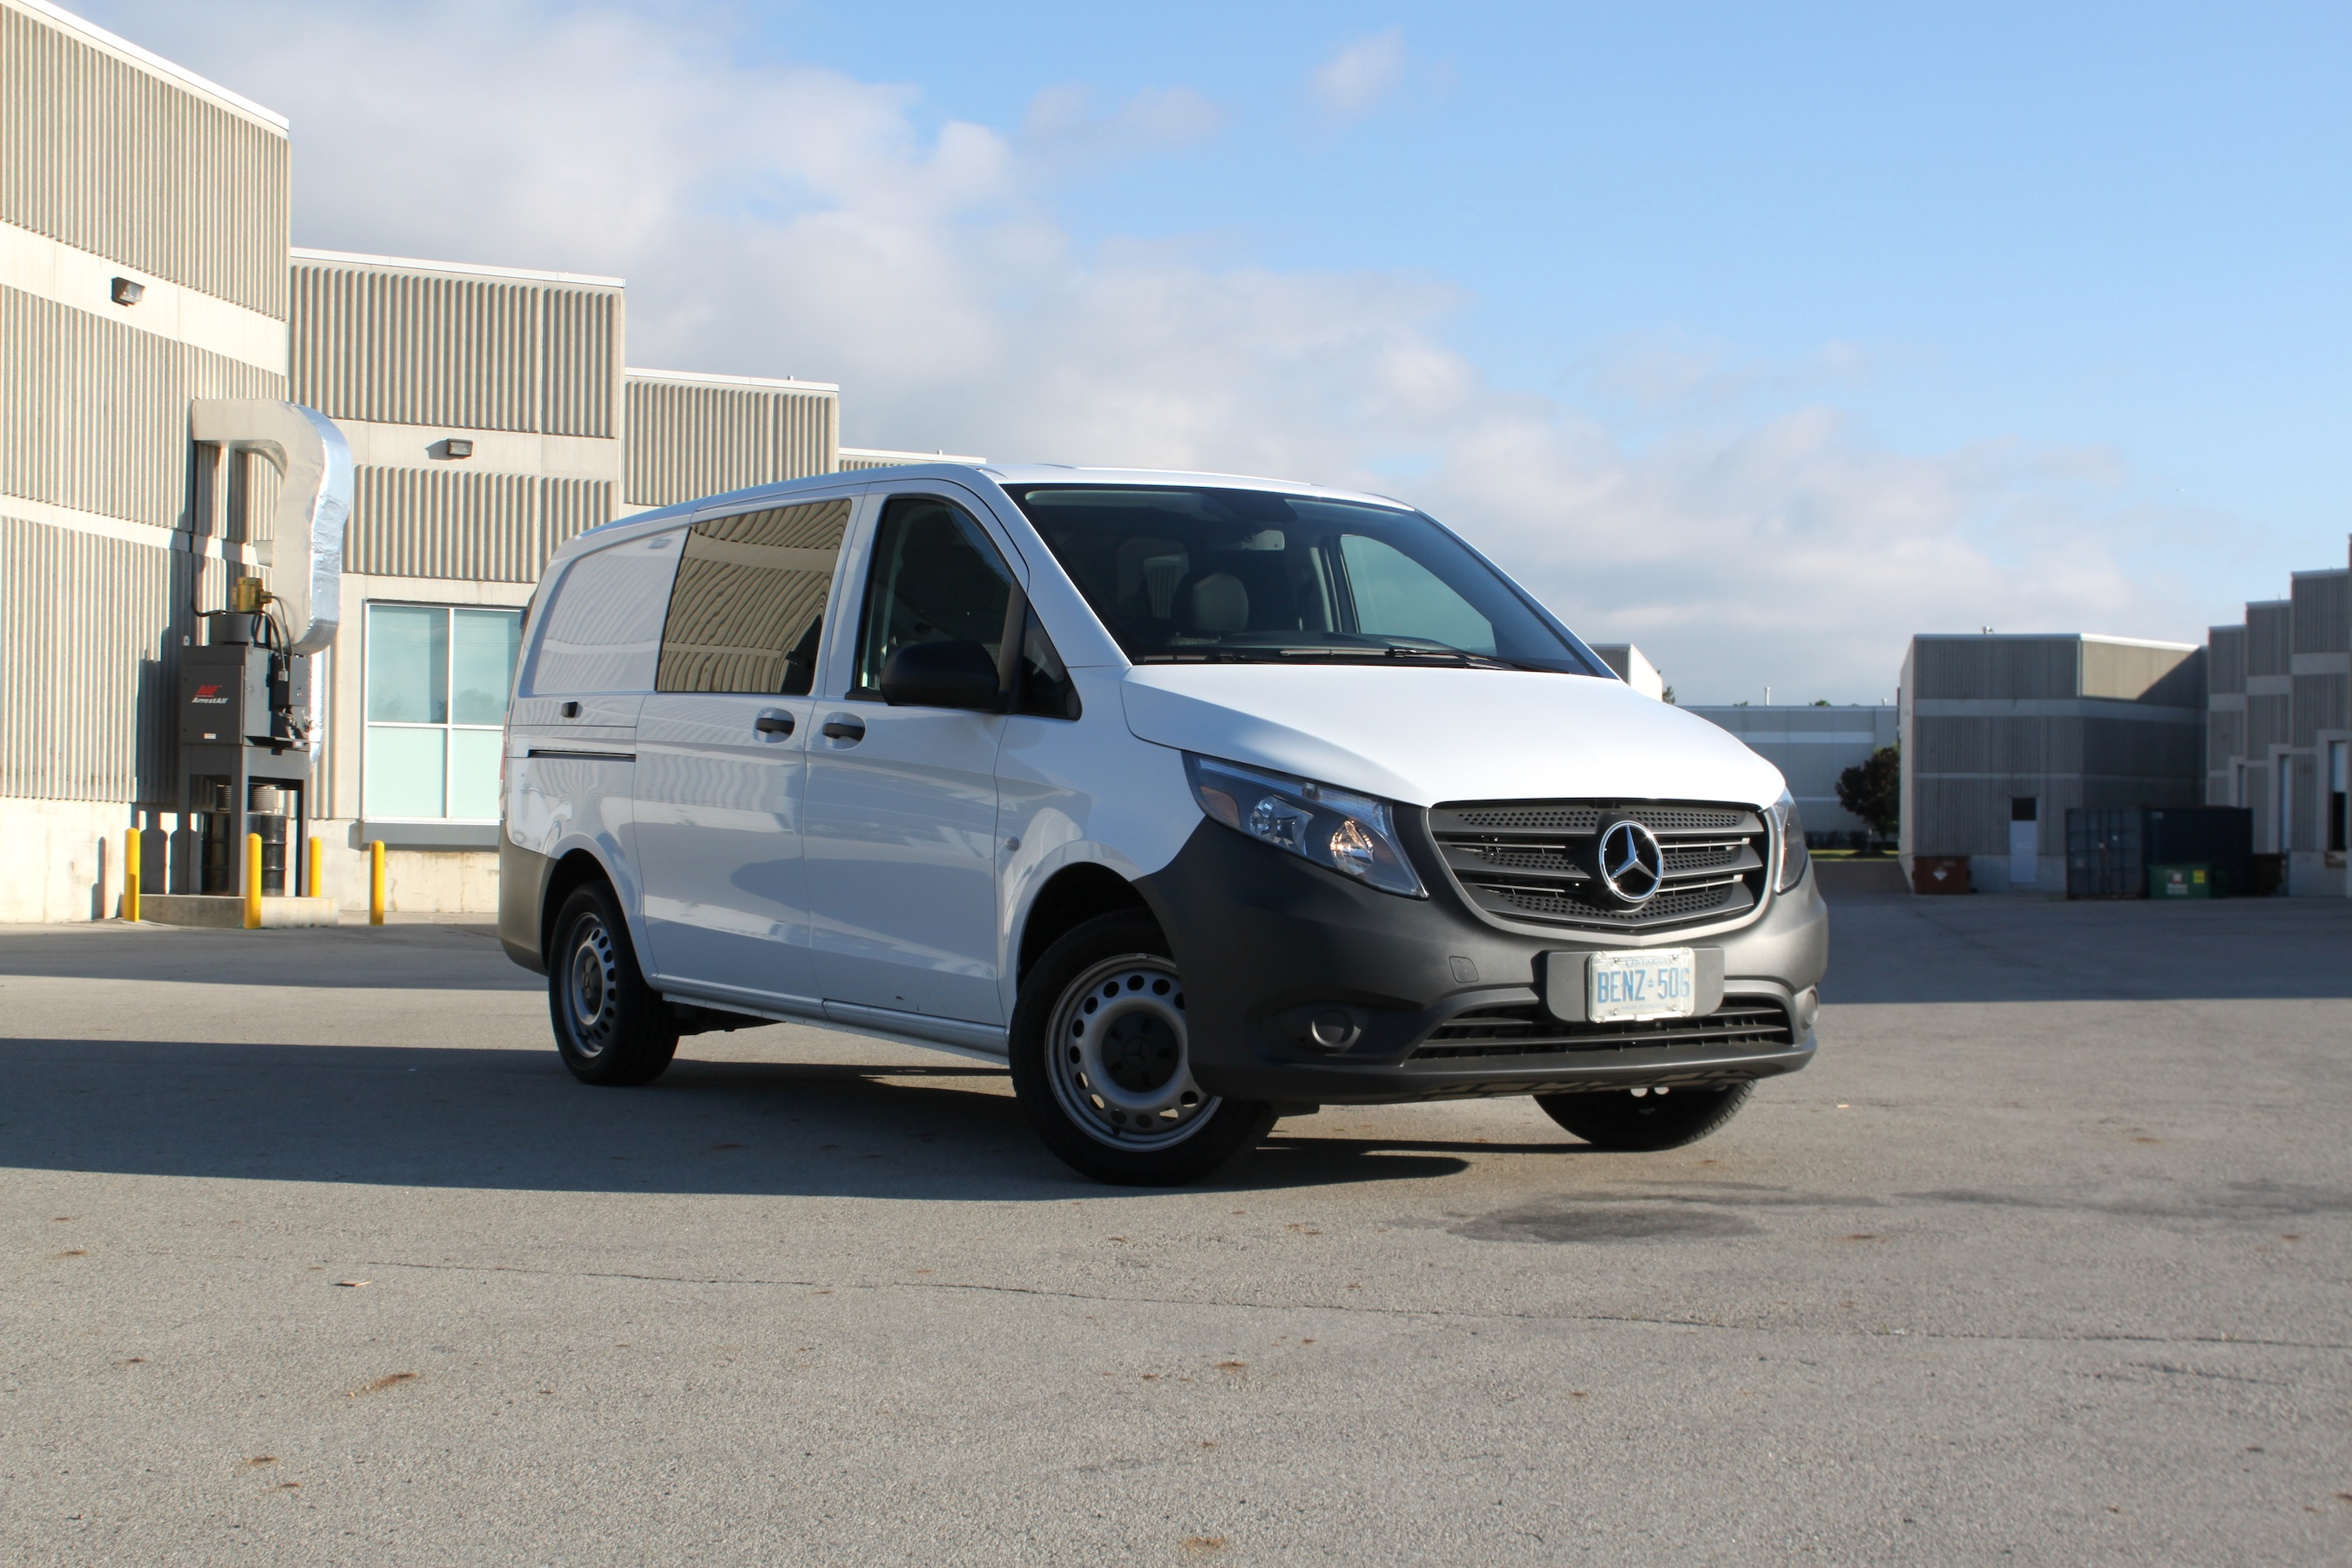 work panel benz van vans trekhaak vd sprinter graden deuren used airco mercedes cdi previous